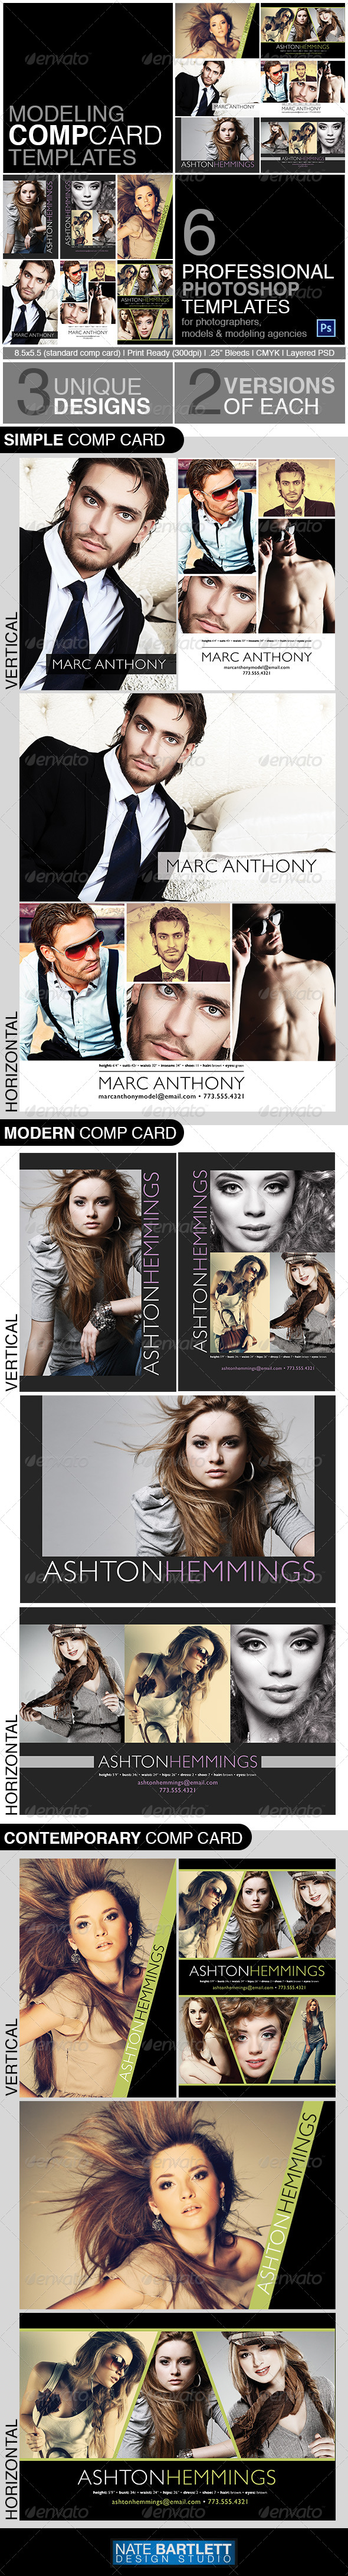 Model Comp Card Template Kit - Miscellaneous Print Templates